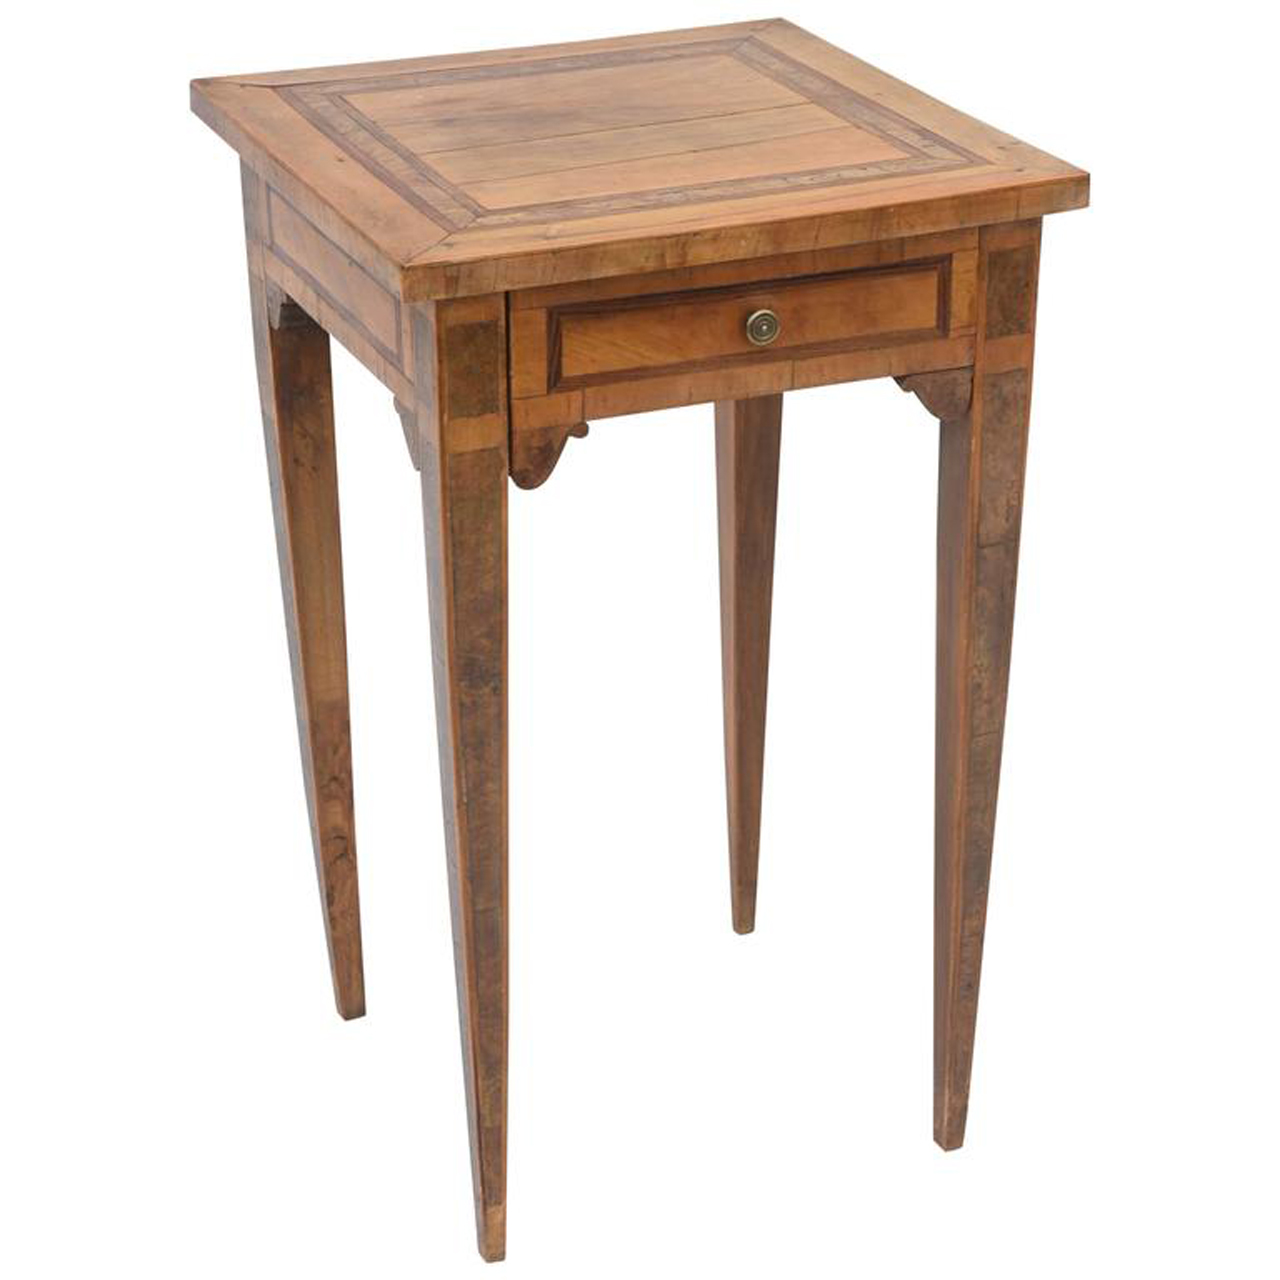 Northern italian 19th century olivewood accent table on for Table 52 west palm beach